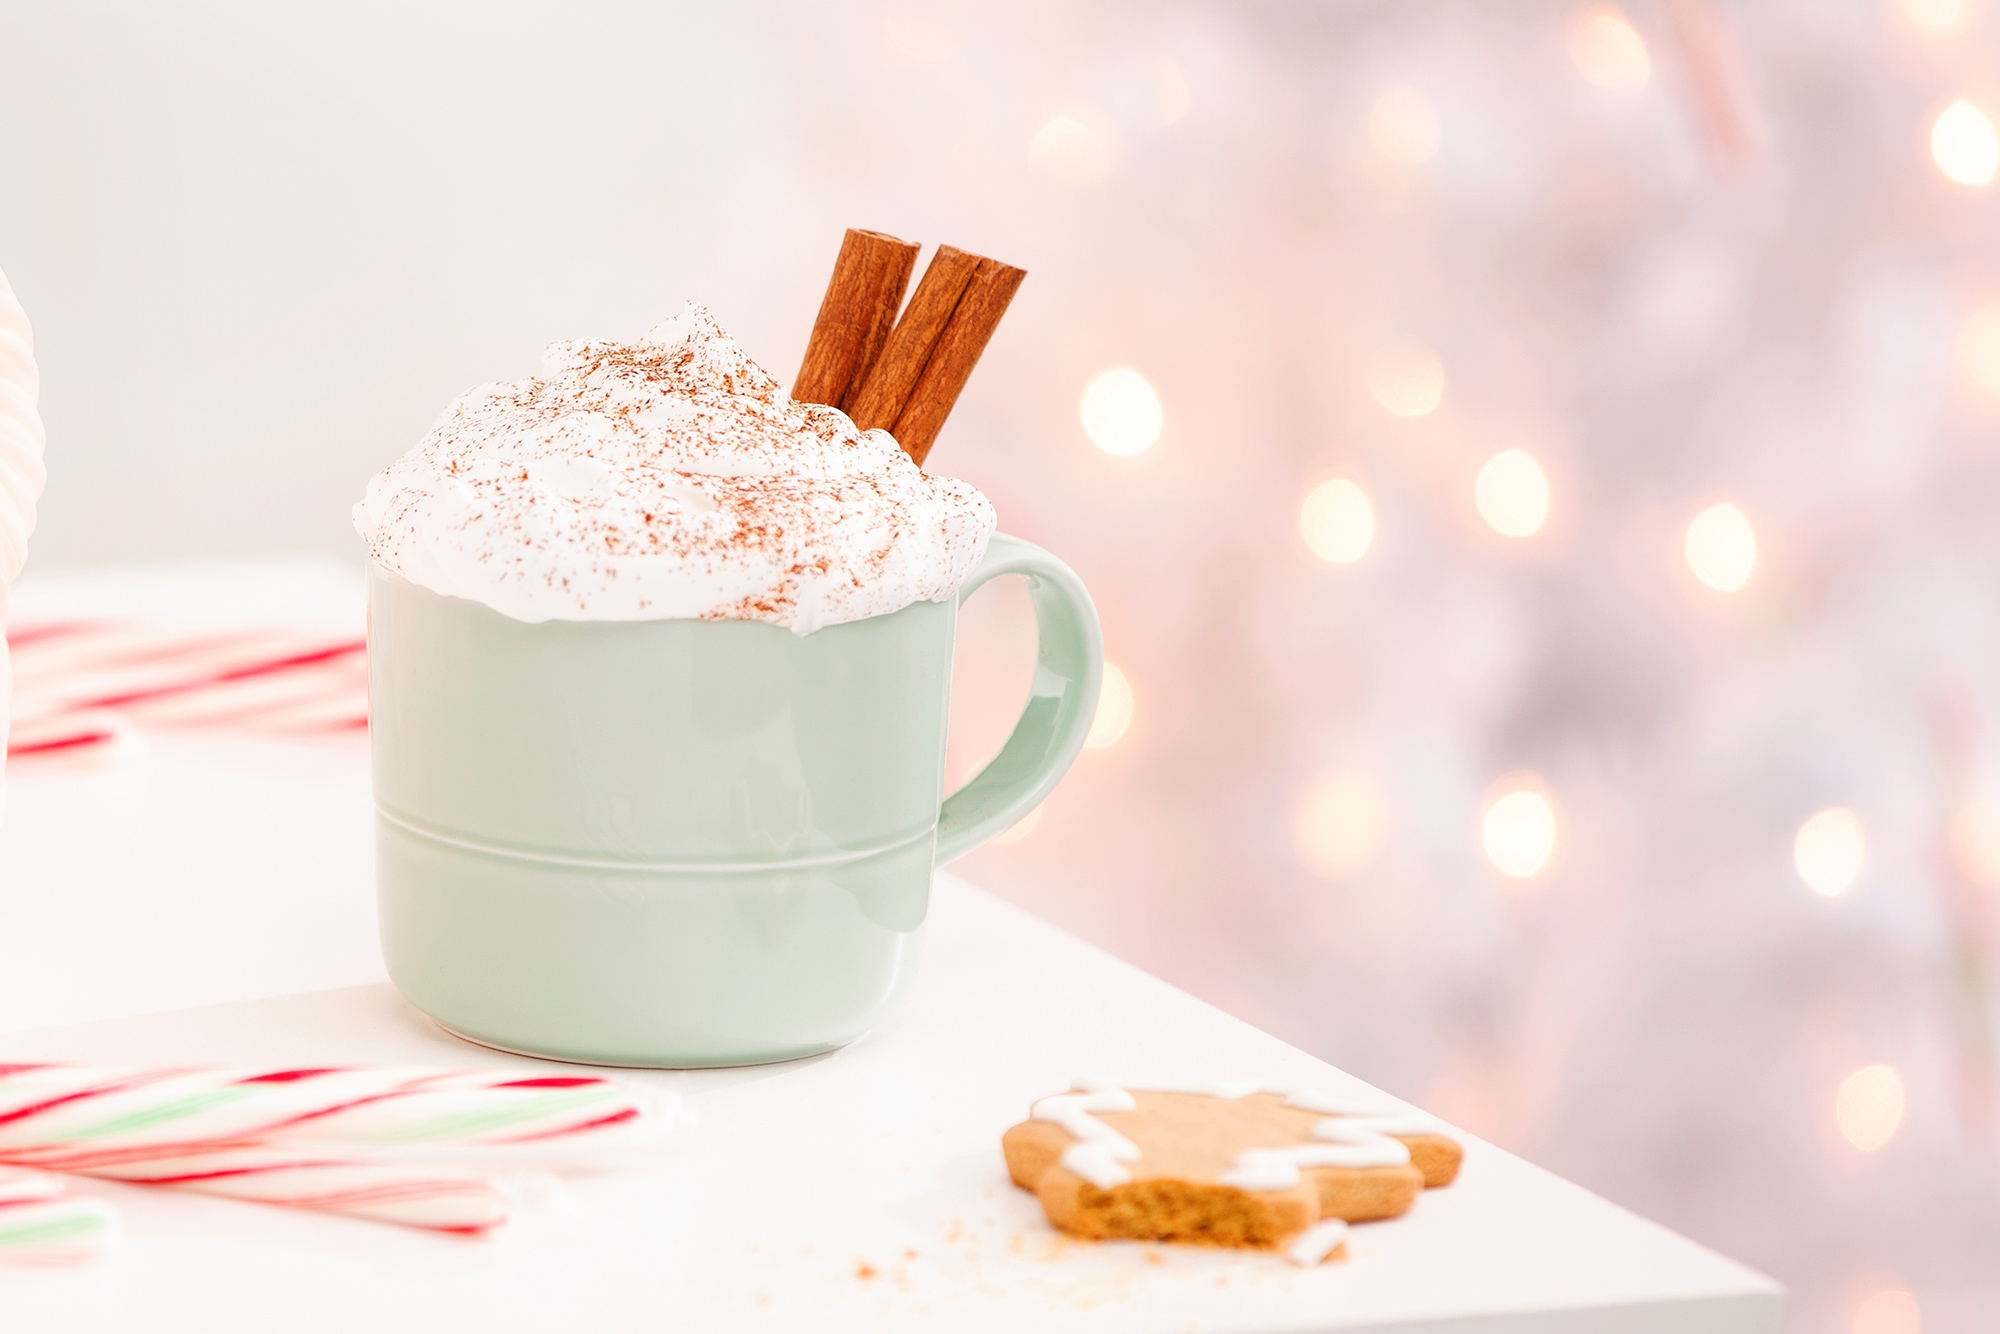 Hot chocolate in a ceramic mug with whipped cream and cinnamon sticks and a partially eaten gingerbread man